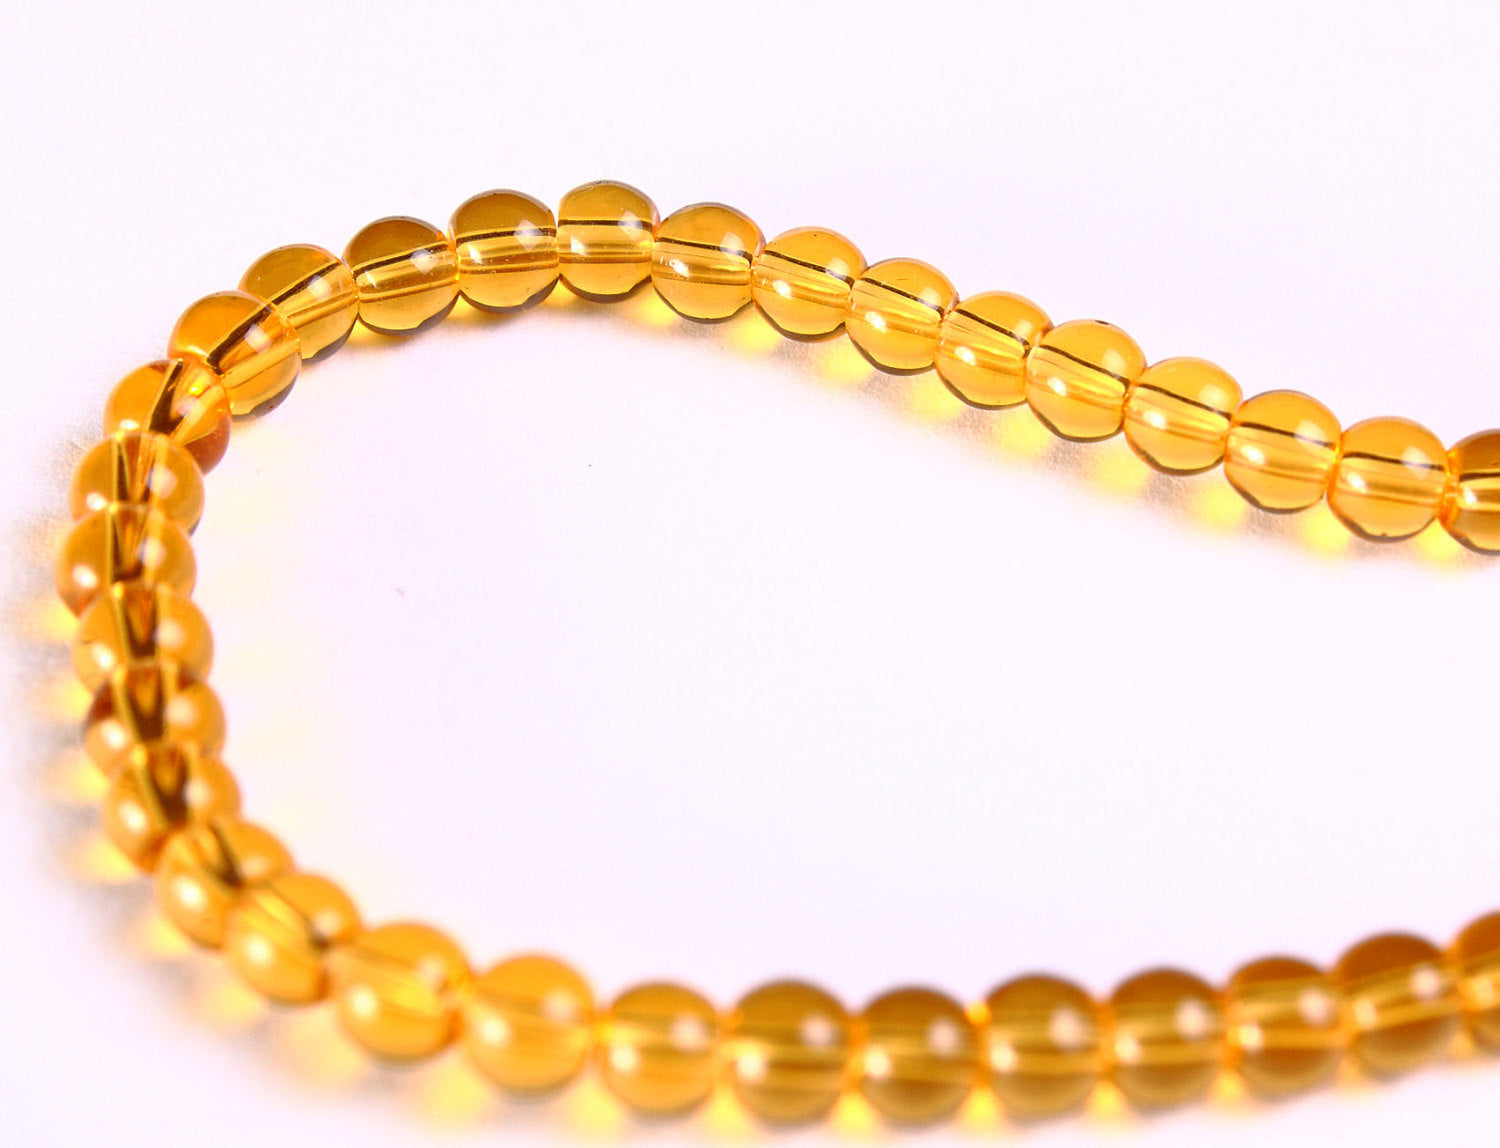 4mm Gold glass beads - 4mm yellow round beads - 1 strand (328)